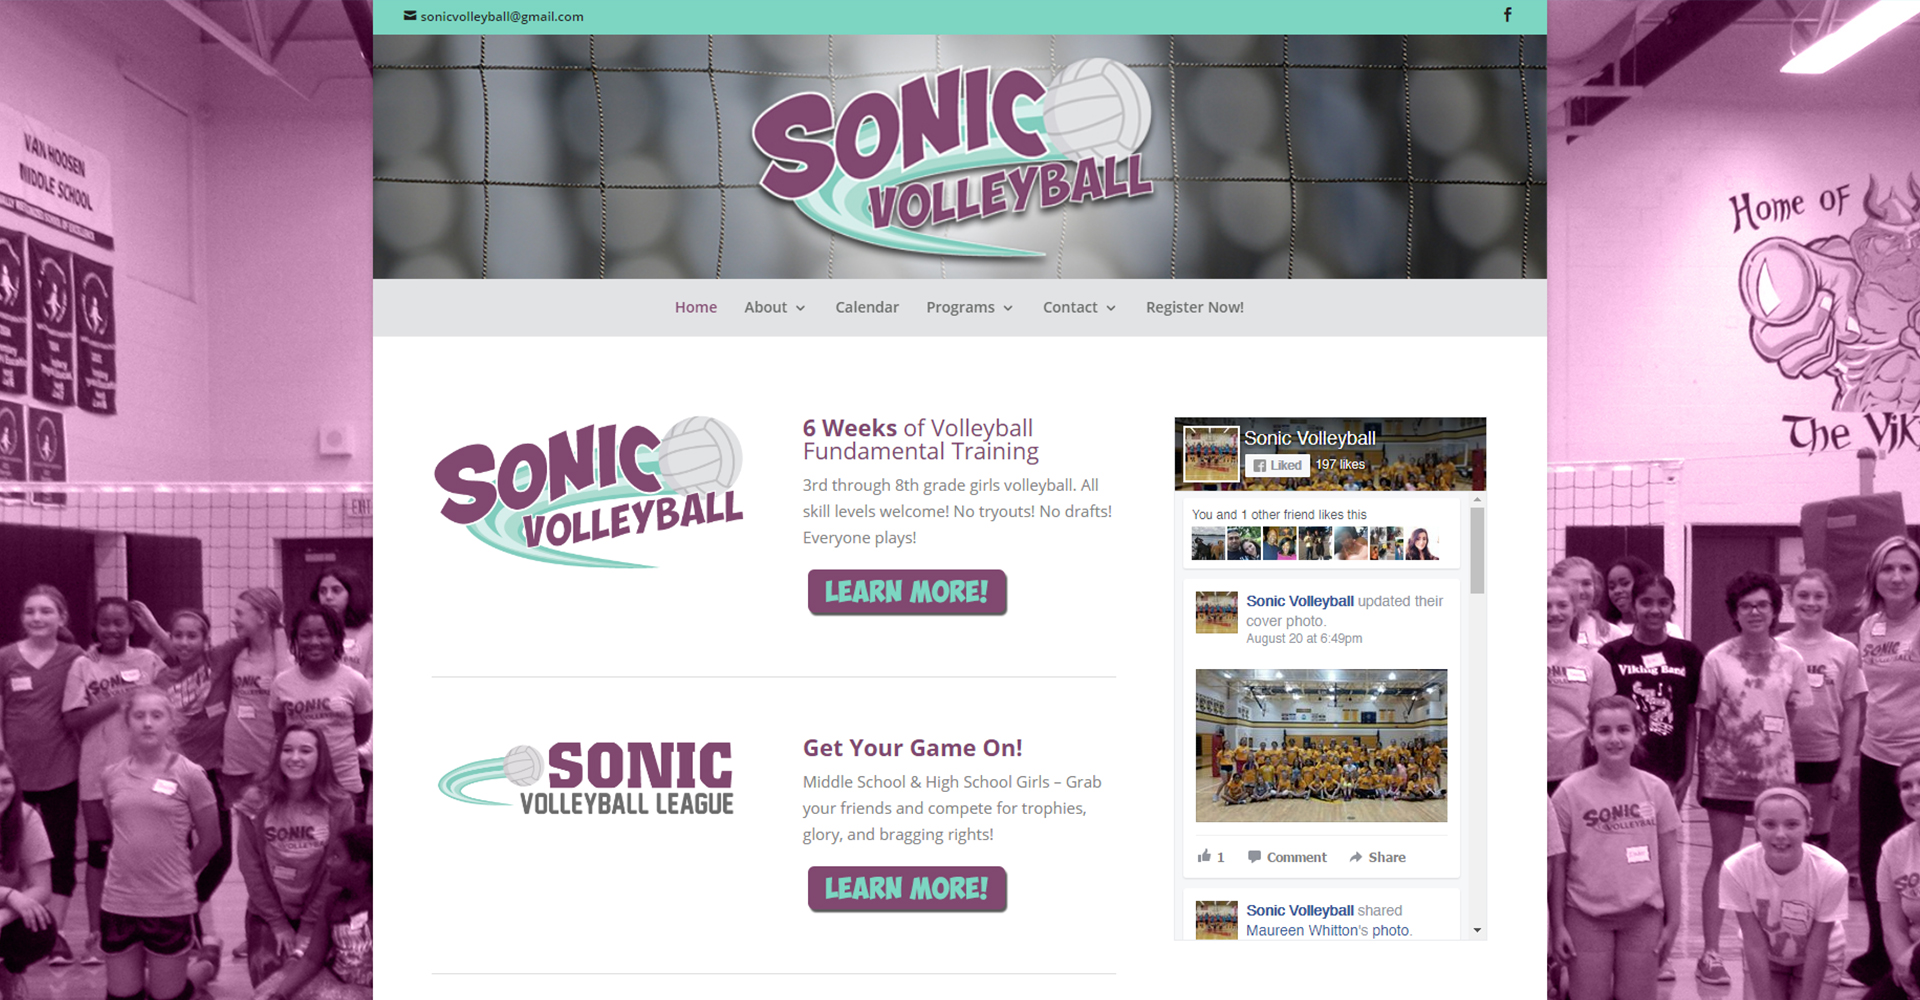 Sonic Volleyball - Zoda Design